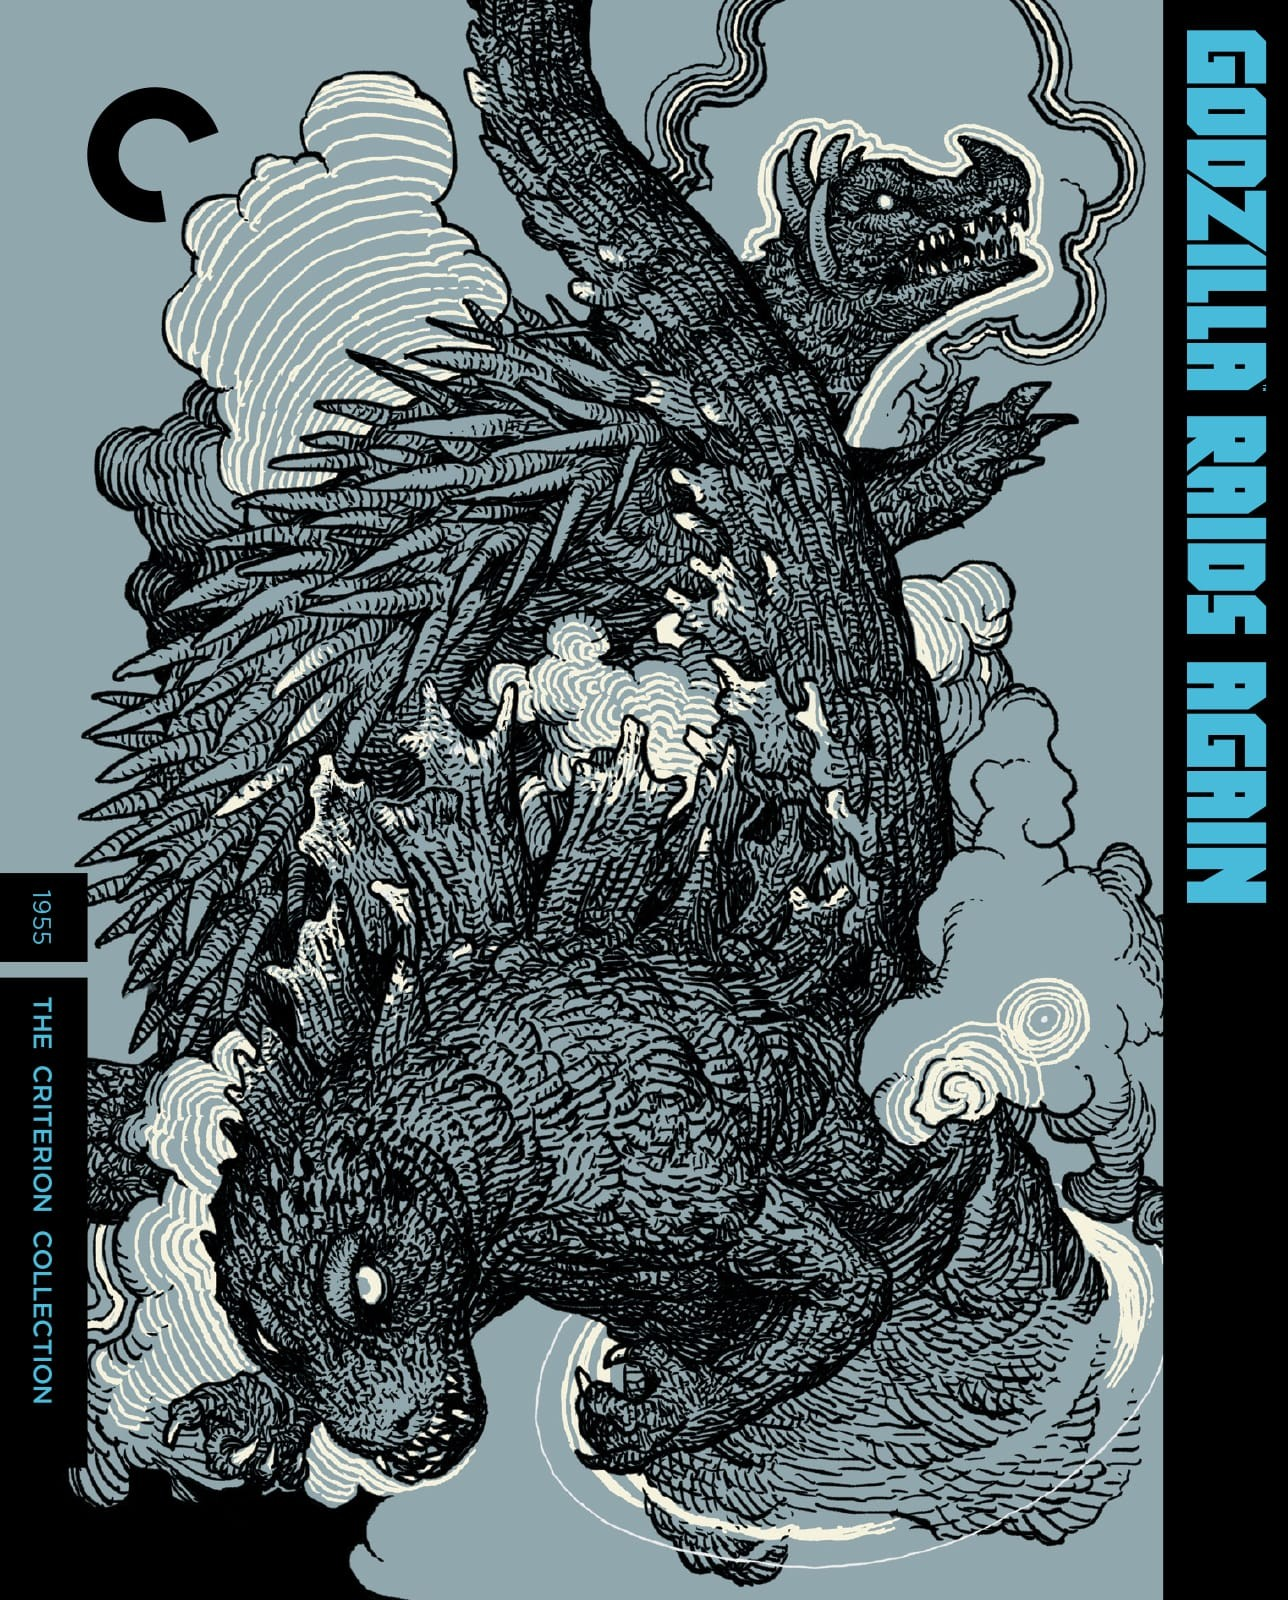 Godzilla Raids Again (1955) | The Criterion Collection